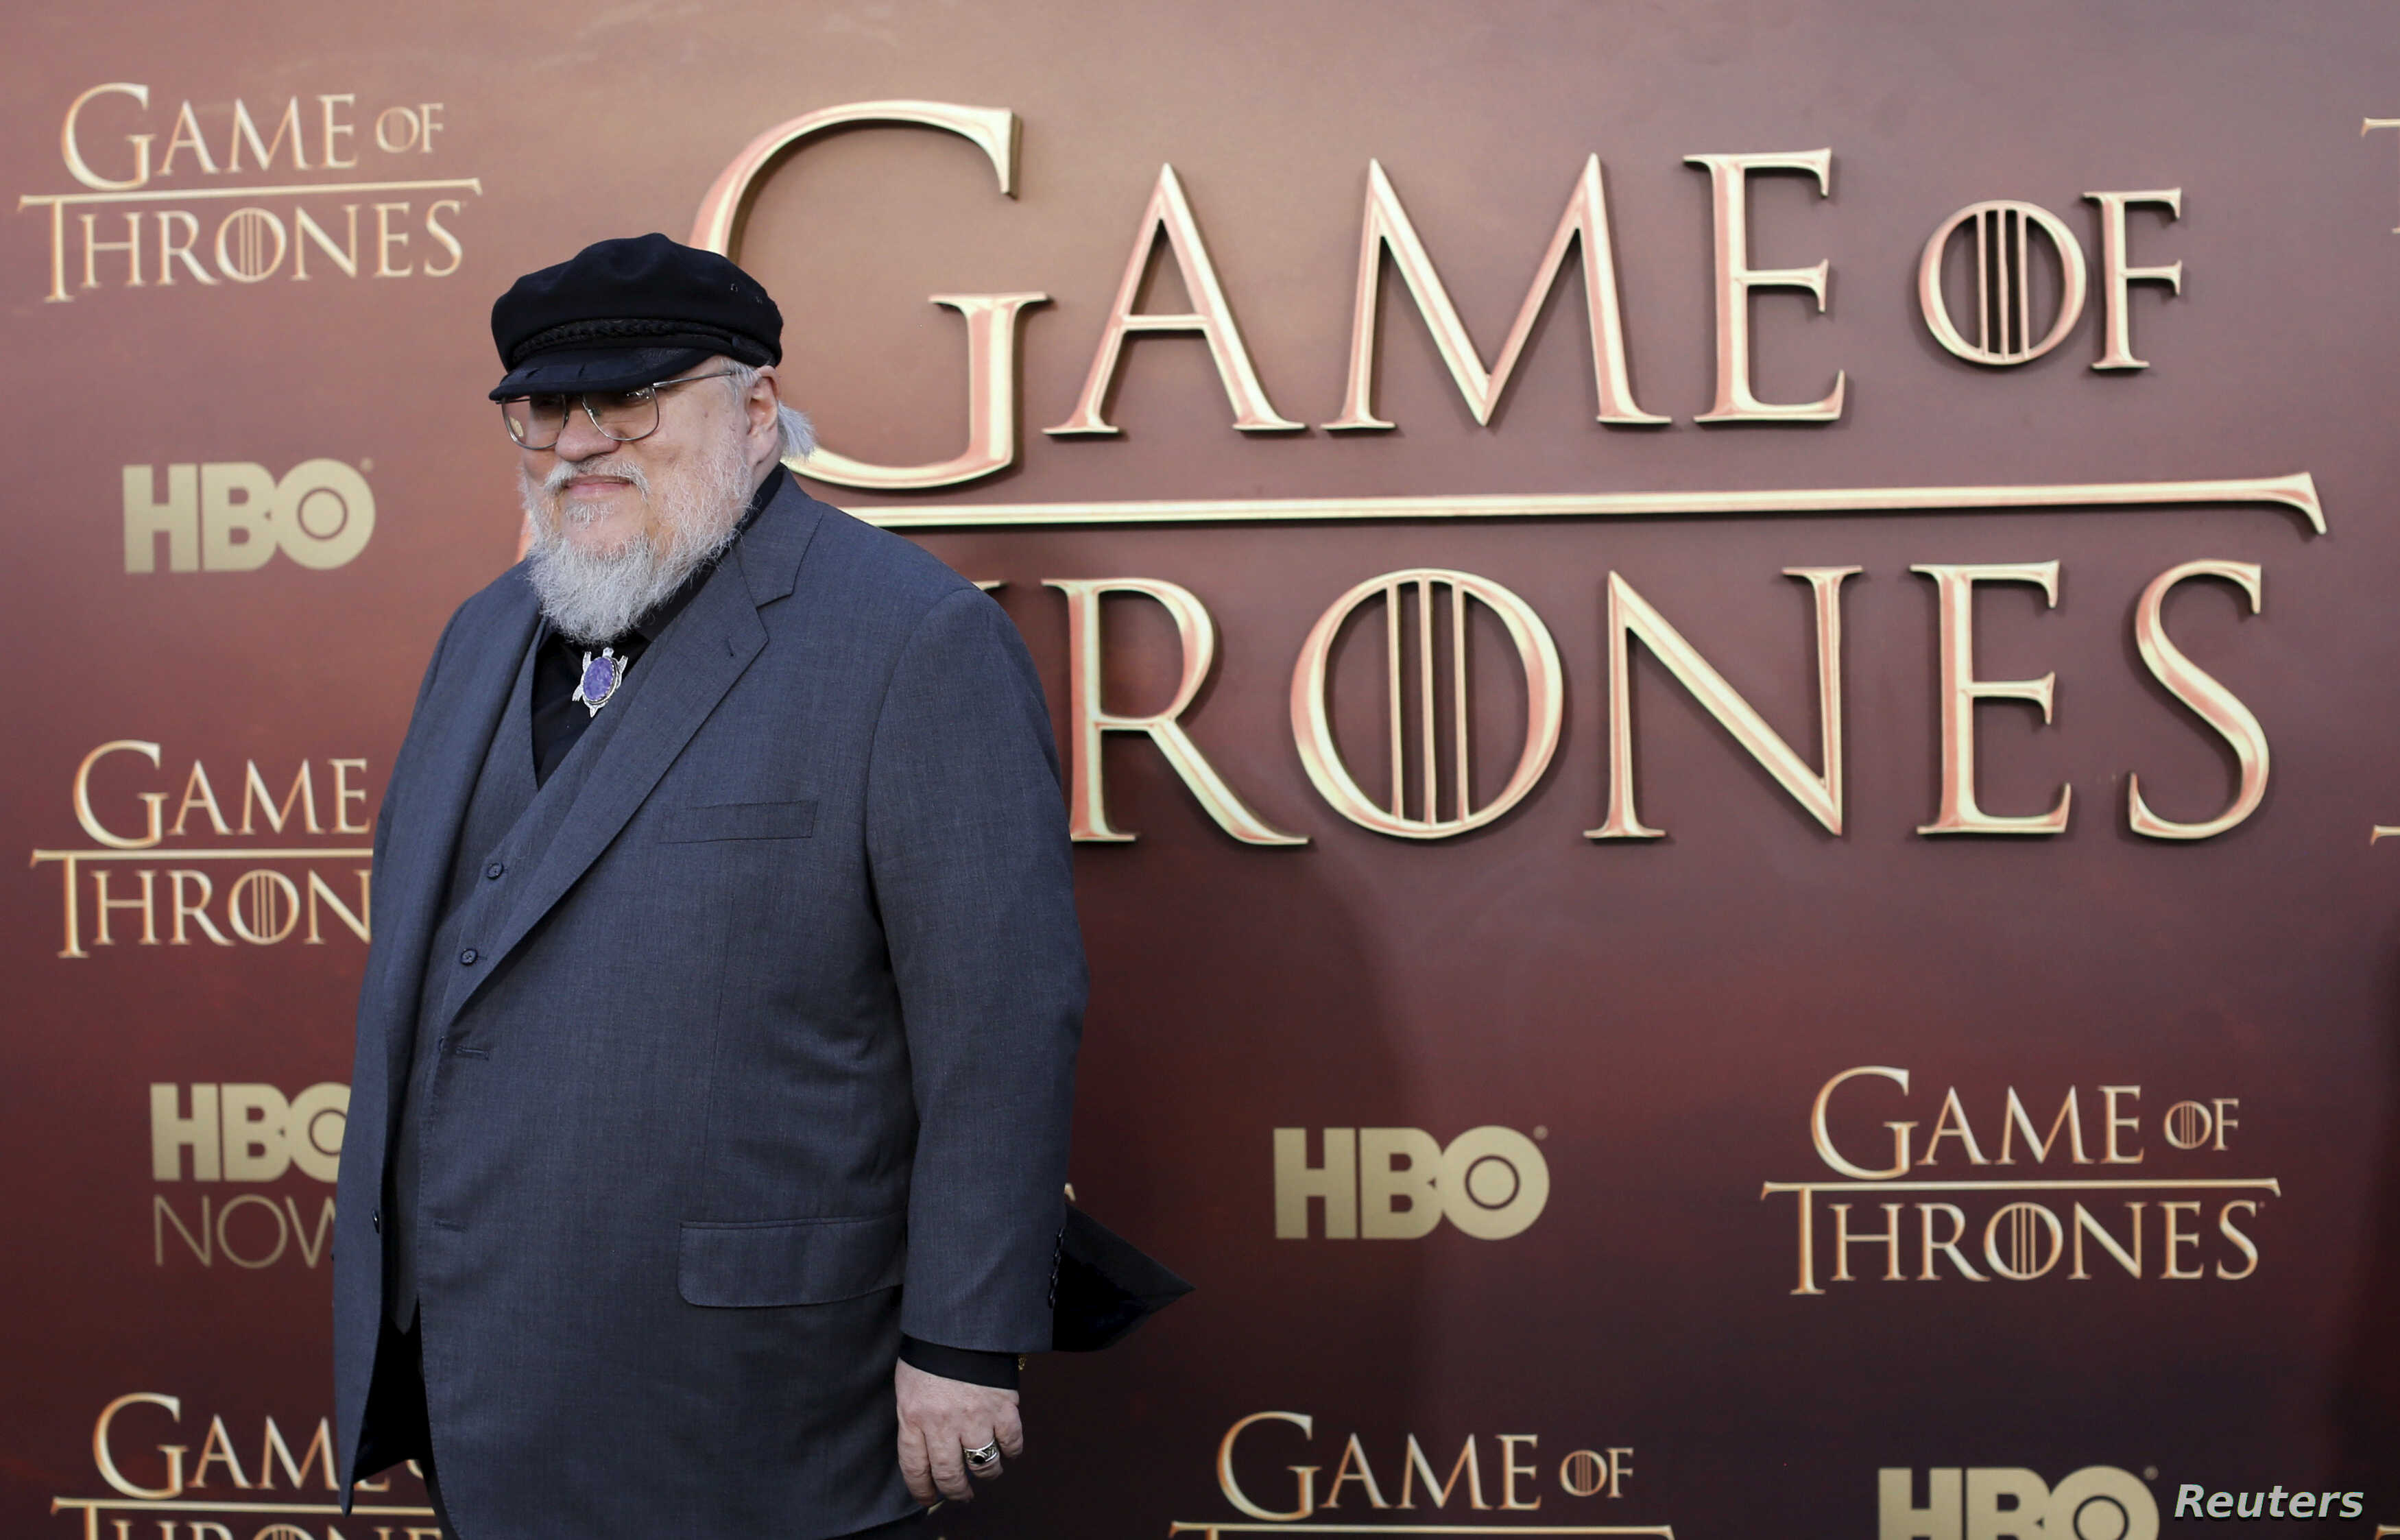 HBO Says Data Hacked | Voice of America - English